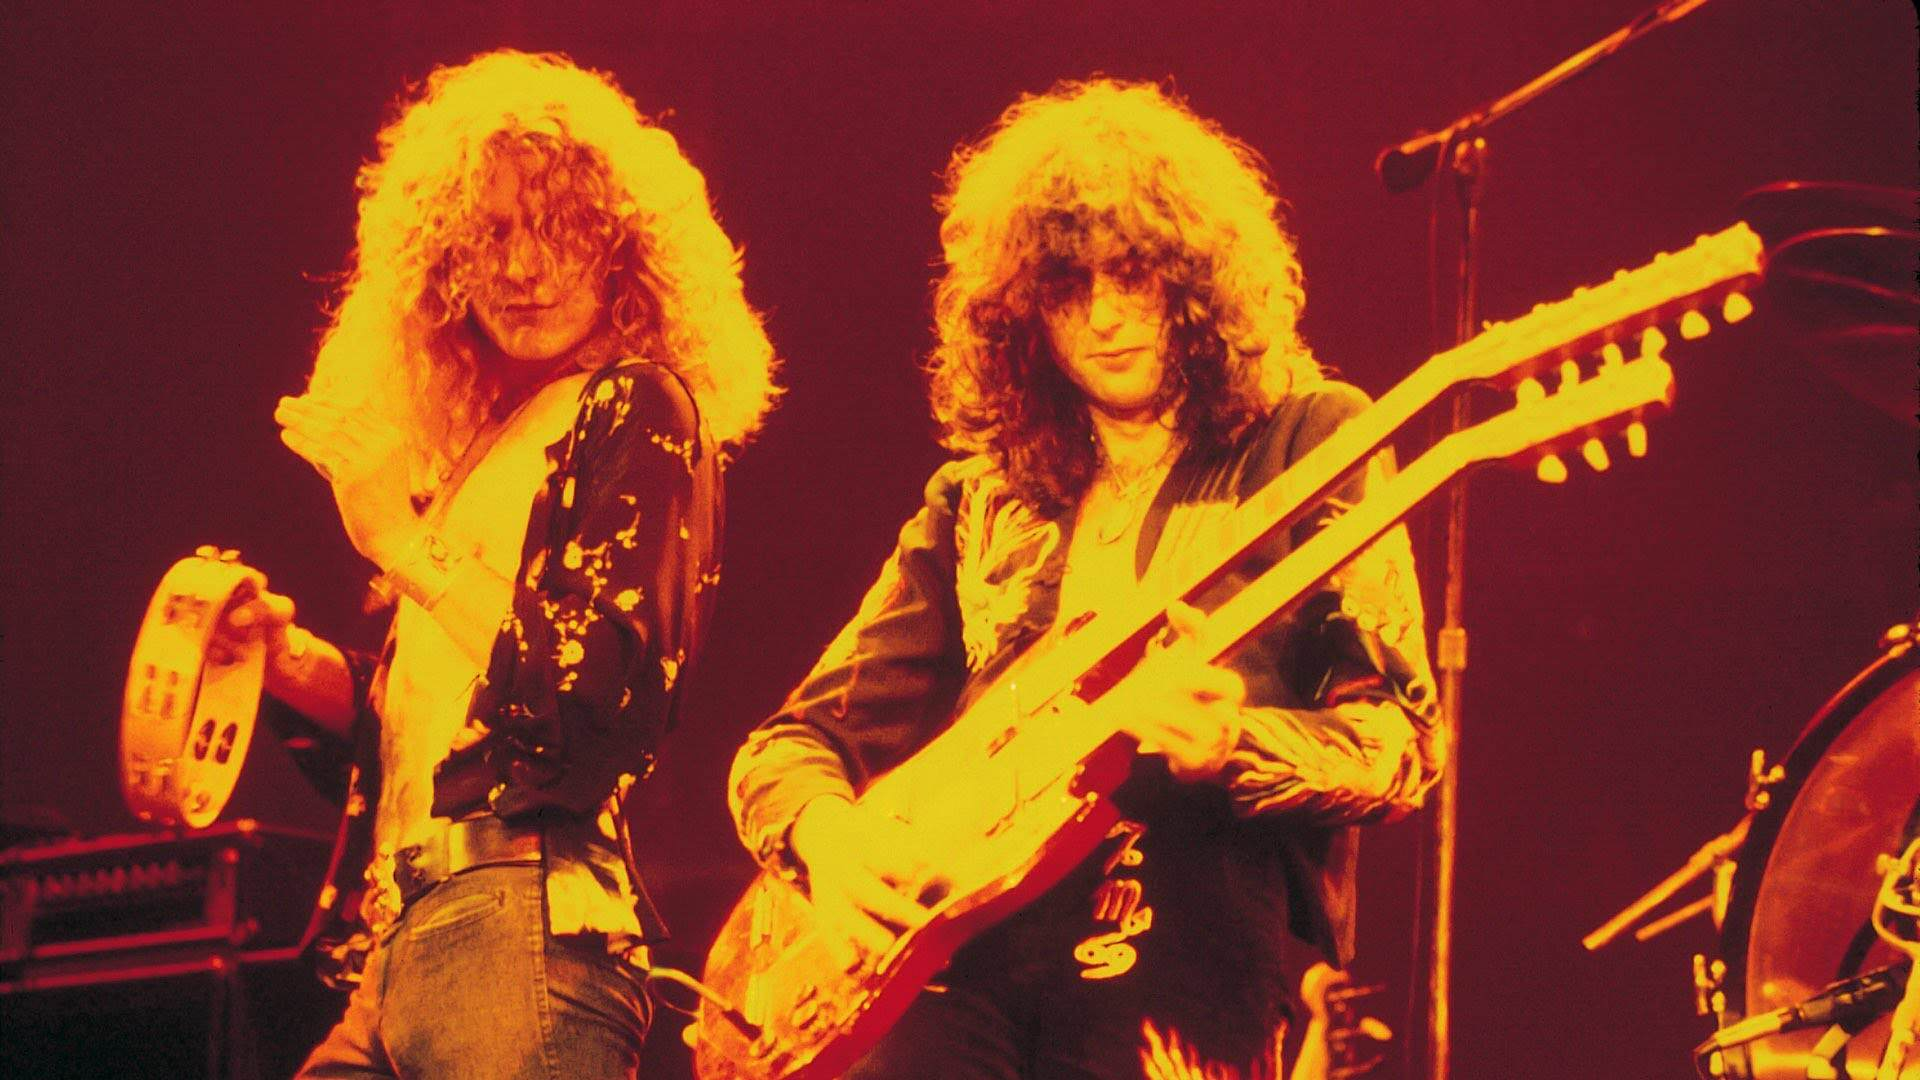 Led Zeppelin Face Copyright Trial Over Legendary Riff zep33